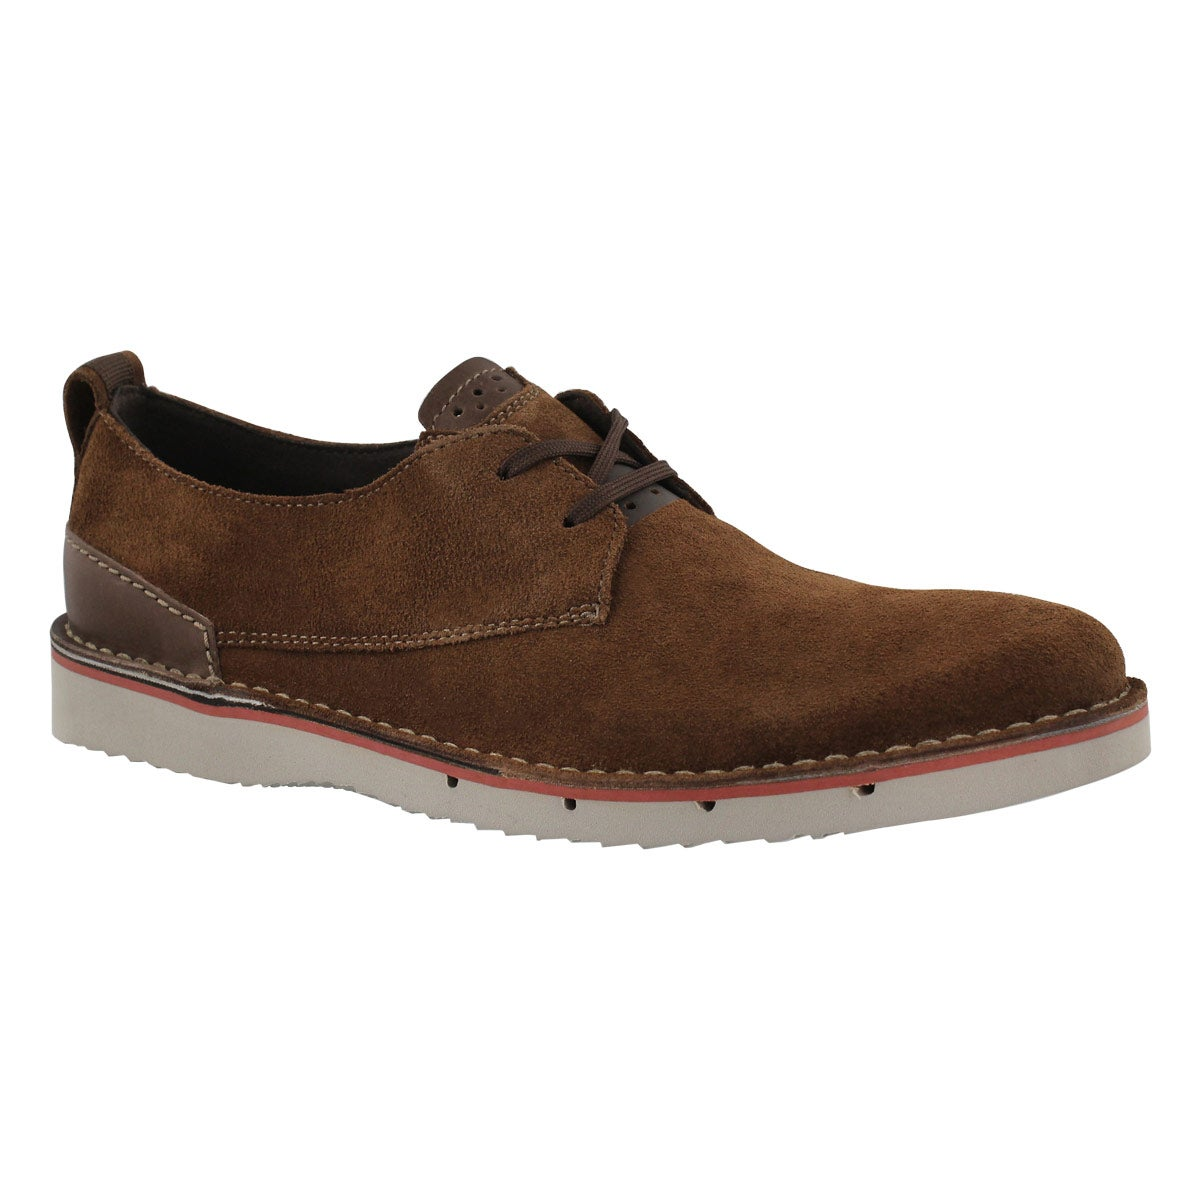 Men's CAPLER PLAIN brown casual oxfords